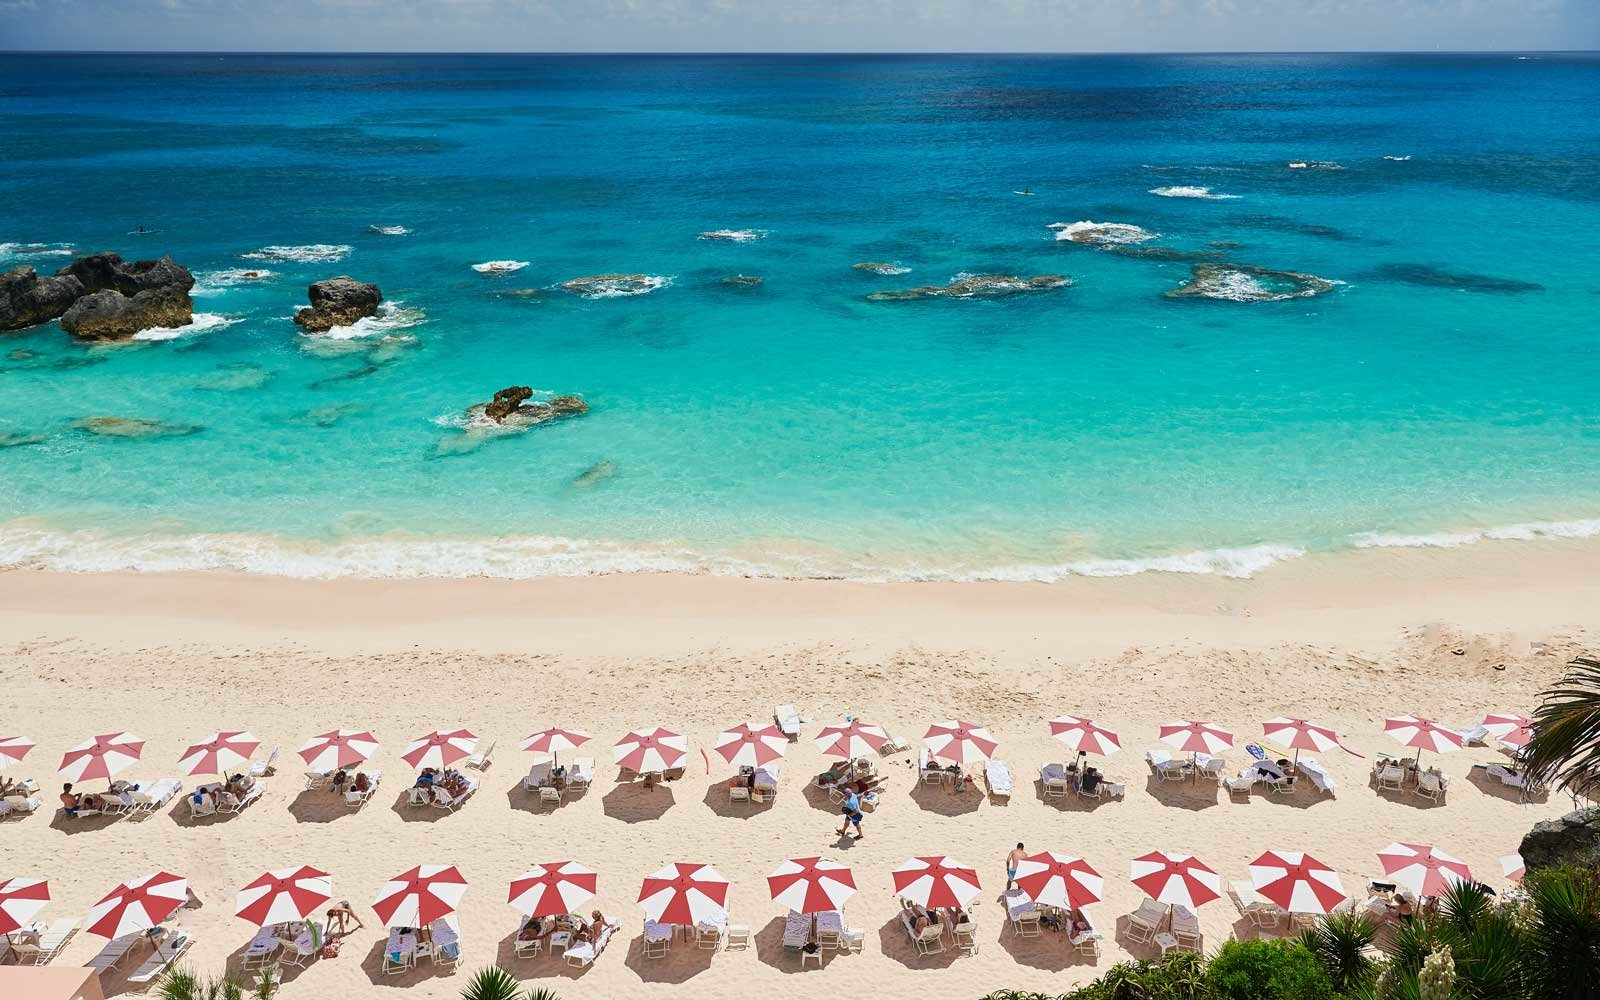 The Top 25 Resort Hotels in the Caribbean, Bermuda, and the Bahamas